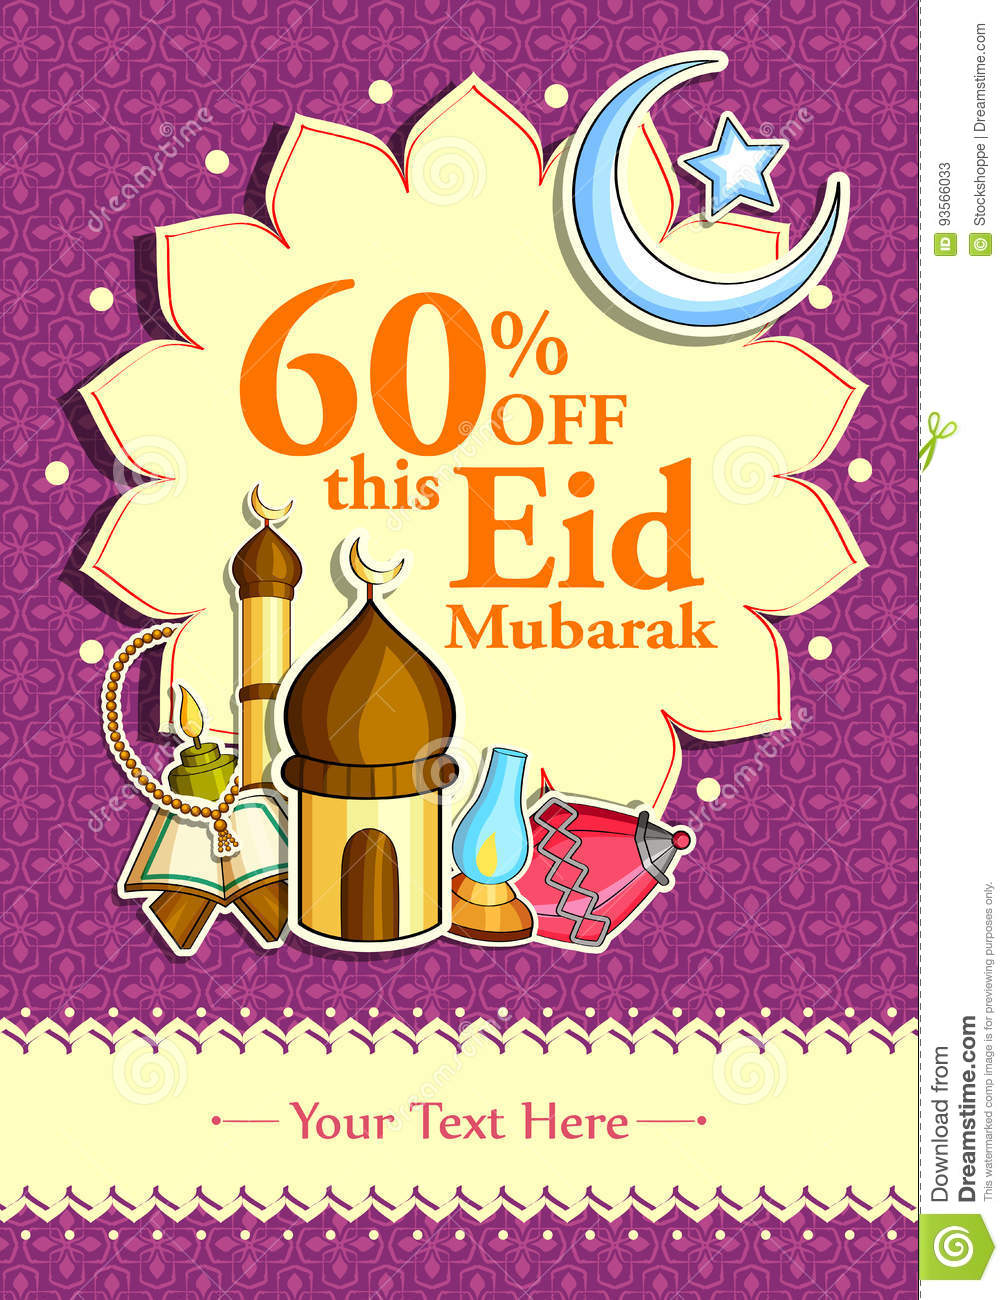 Eid mubarak blessing for eid background stock vector eid mubarak blessing for eid background kristyandbryce Image collections